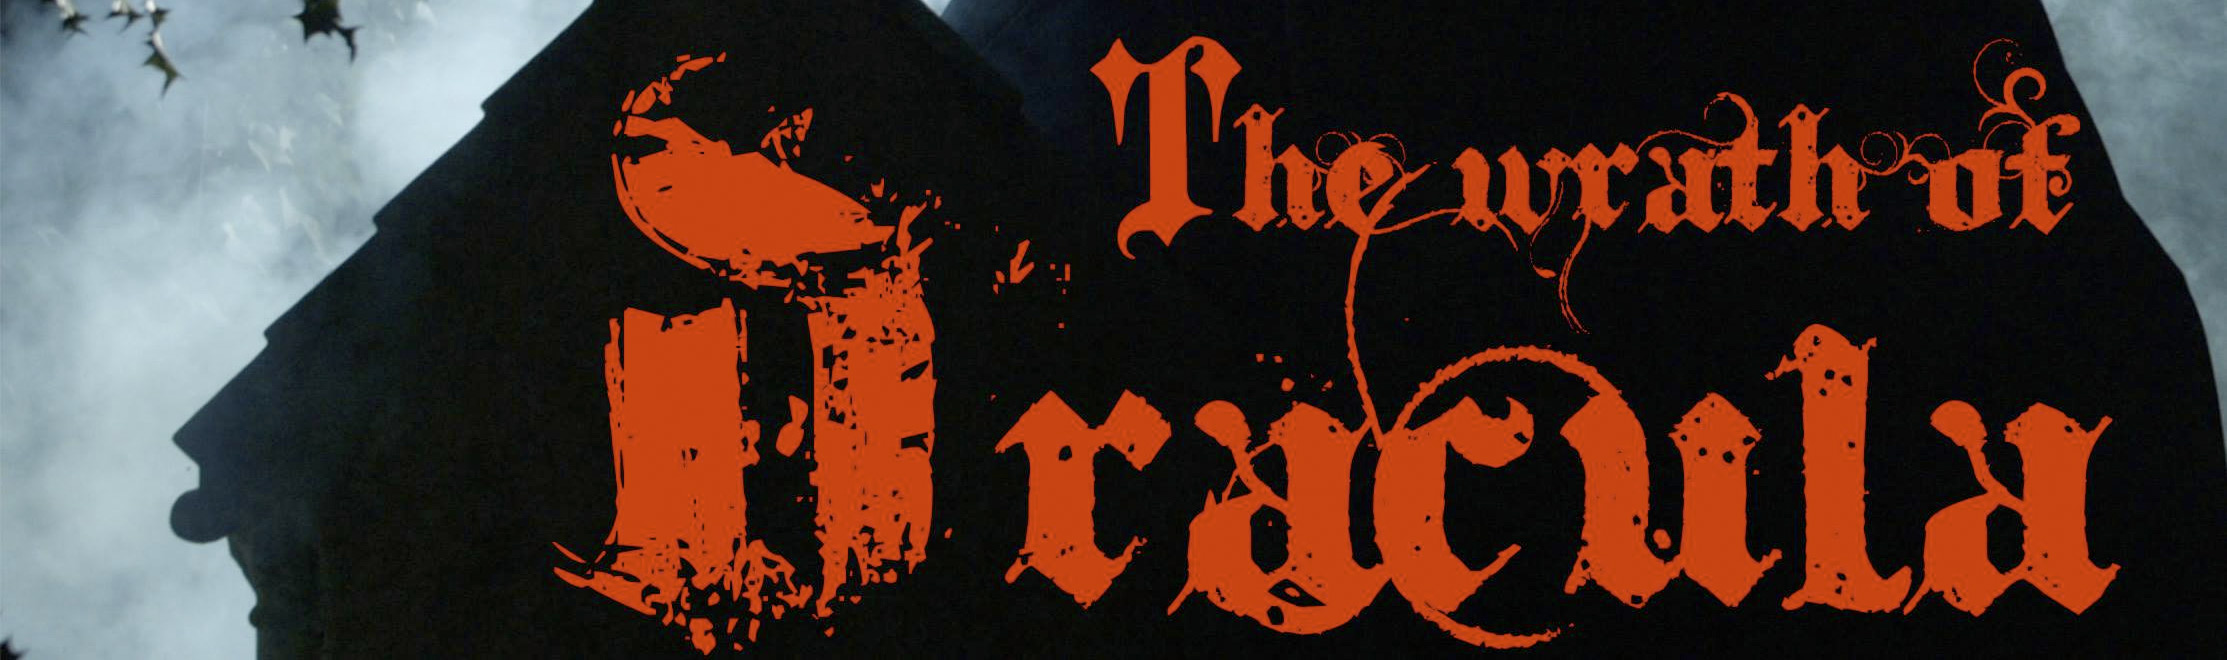 Audio hire for Wrath of Dracula feature film trailer